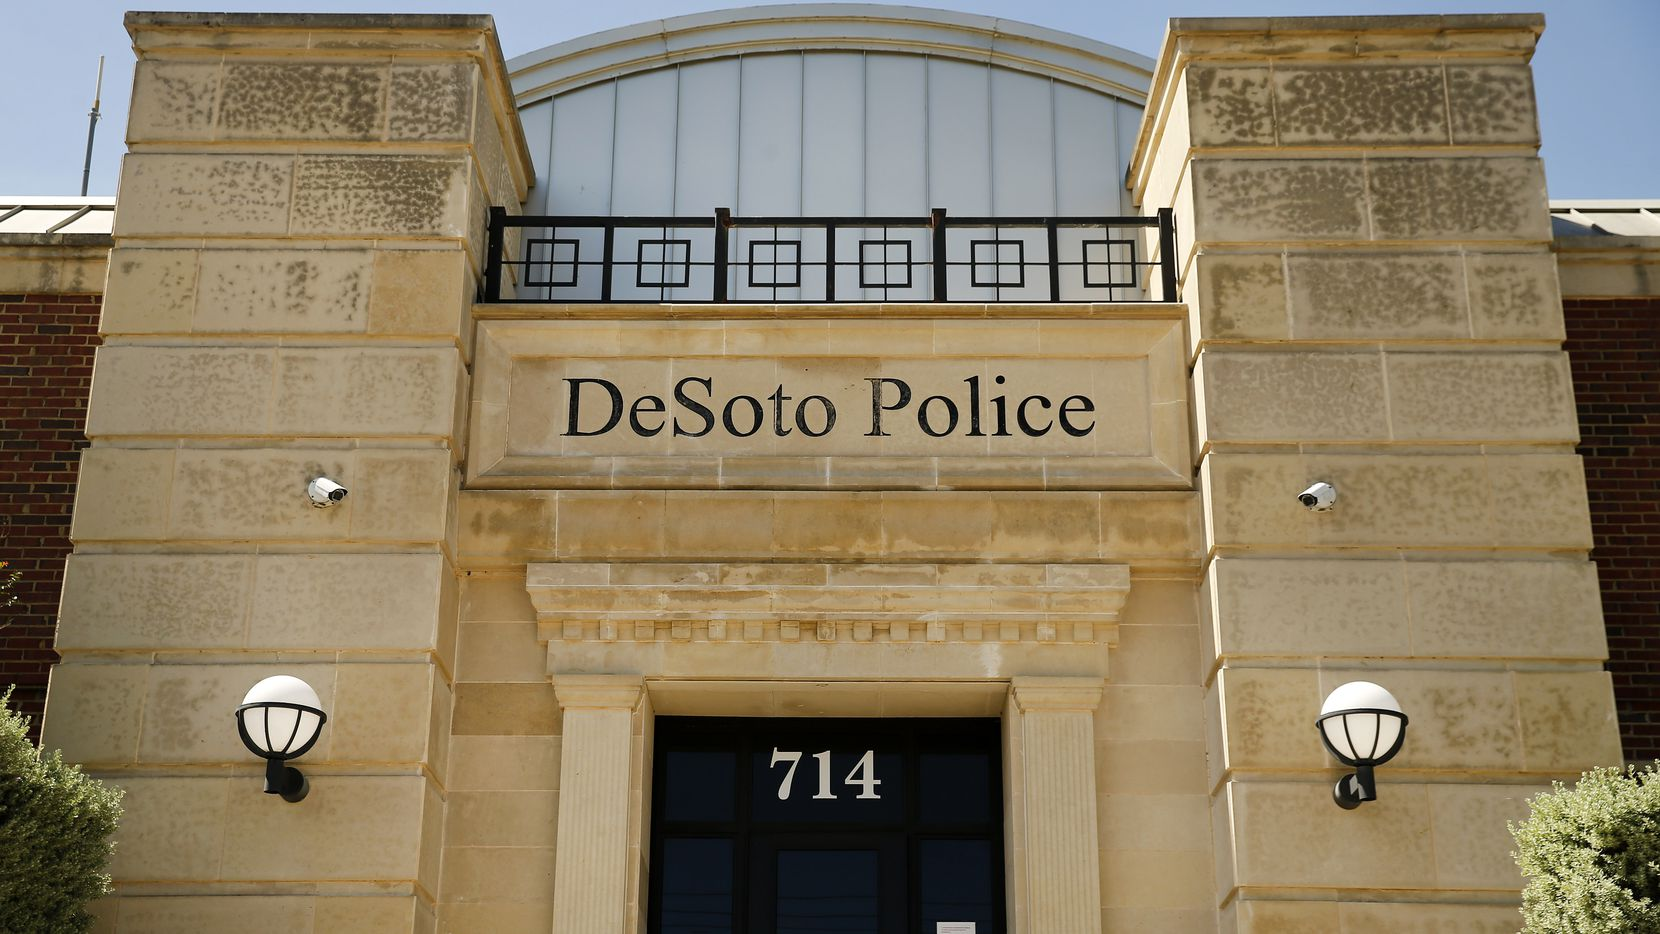 The DeSoto Police Department is giving residents the opportunity to give guns to law enforcement during its annual gun surrender program on July 31.